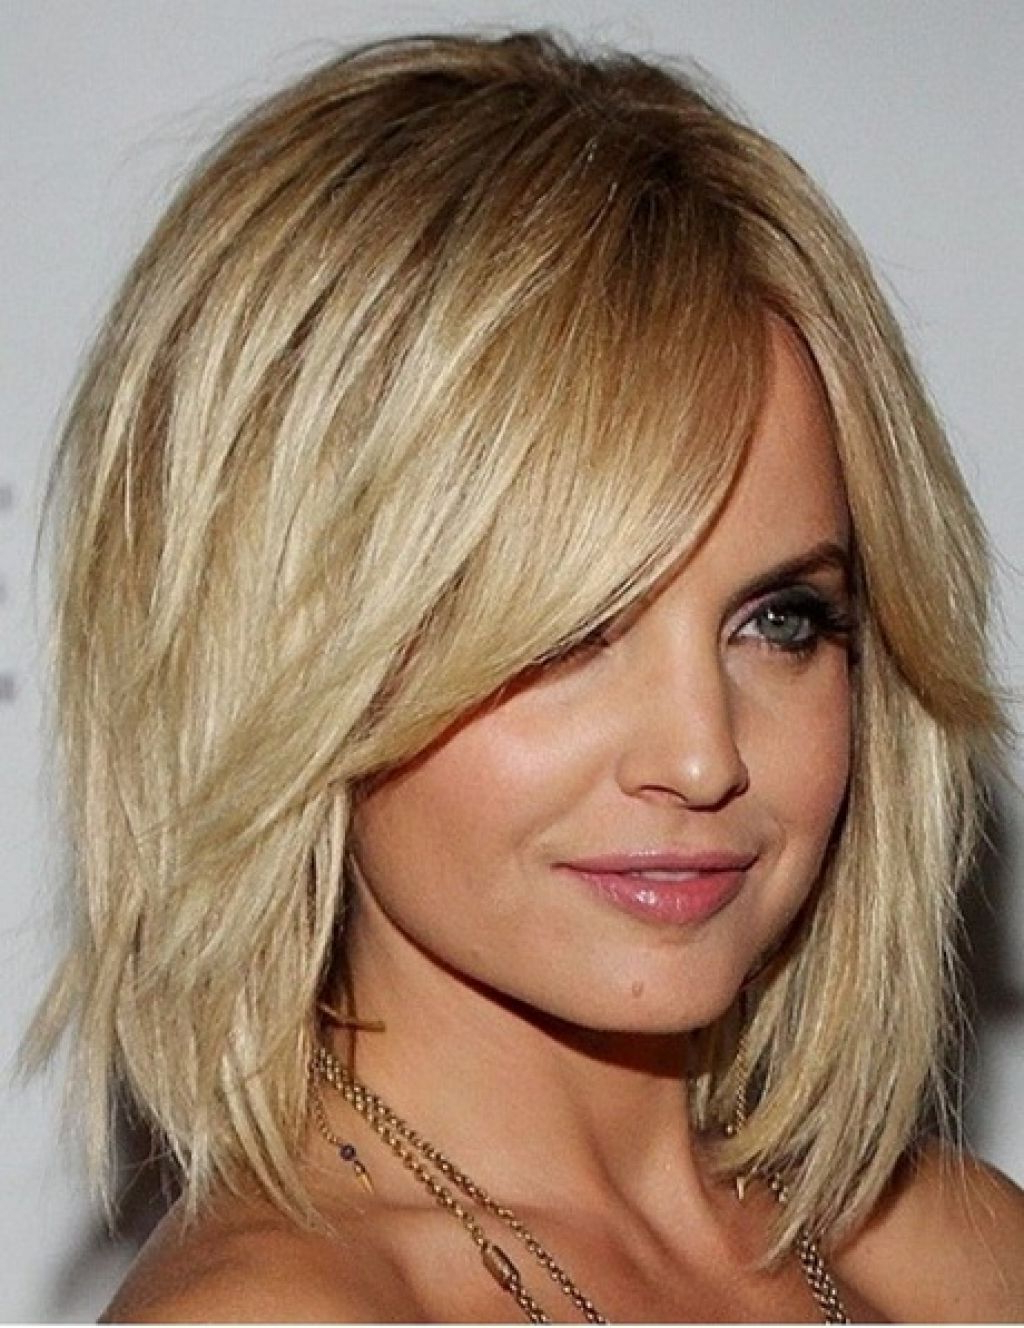 Hair Cuts : Mid Length Haircuts For Fine Hair Choppy Medium Ideas With Current Medium Hairstyles For Fine Hair And Oval Face (View 8 of 20)